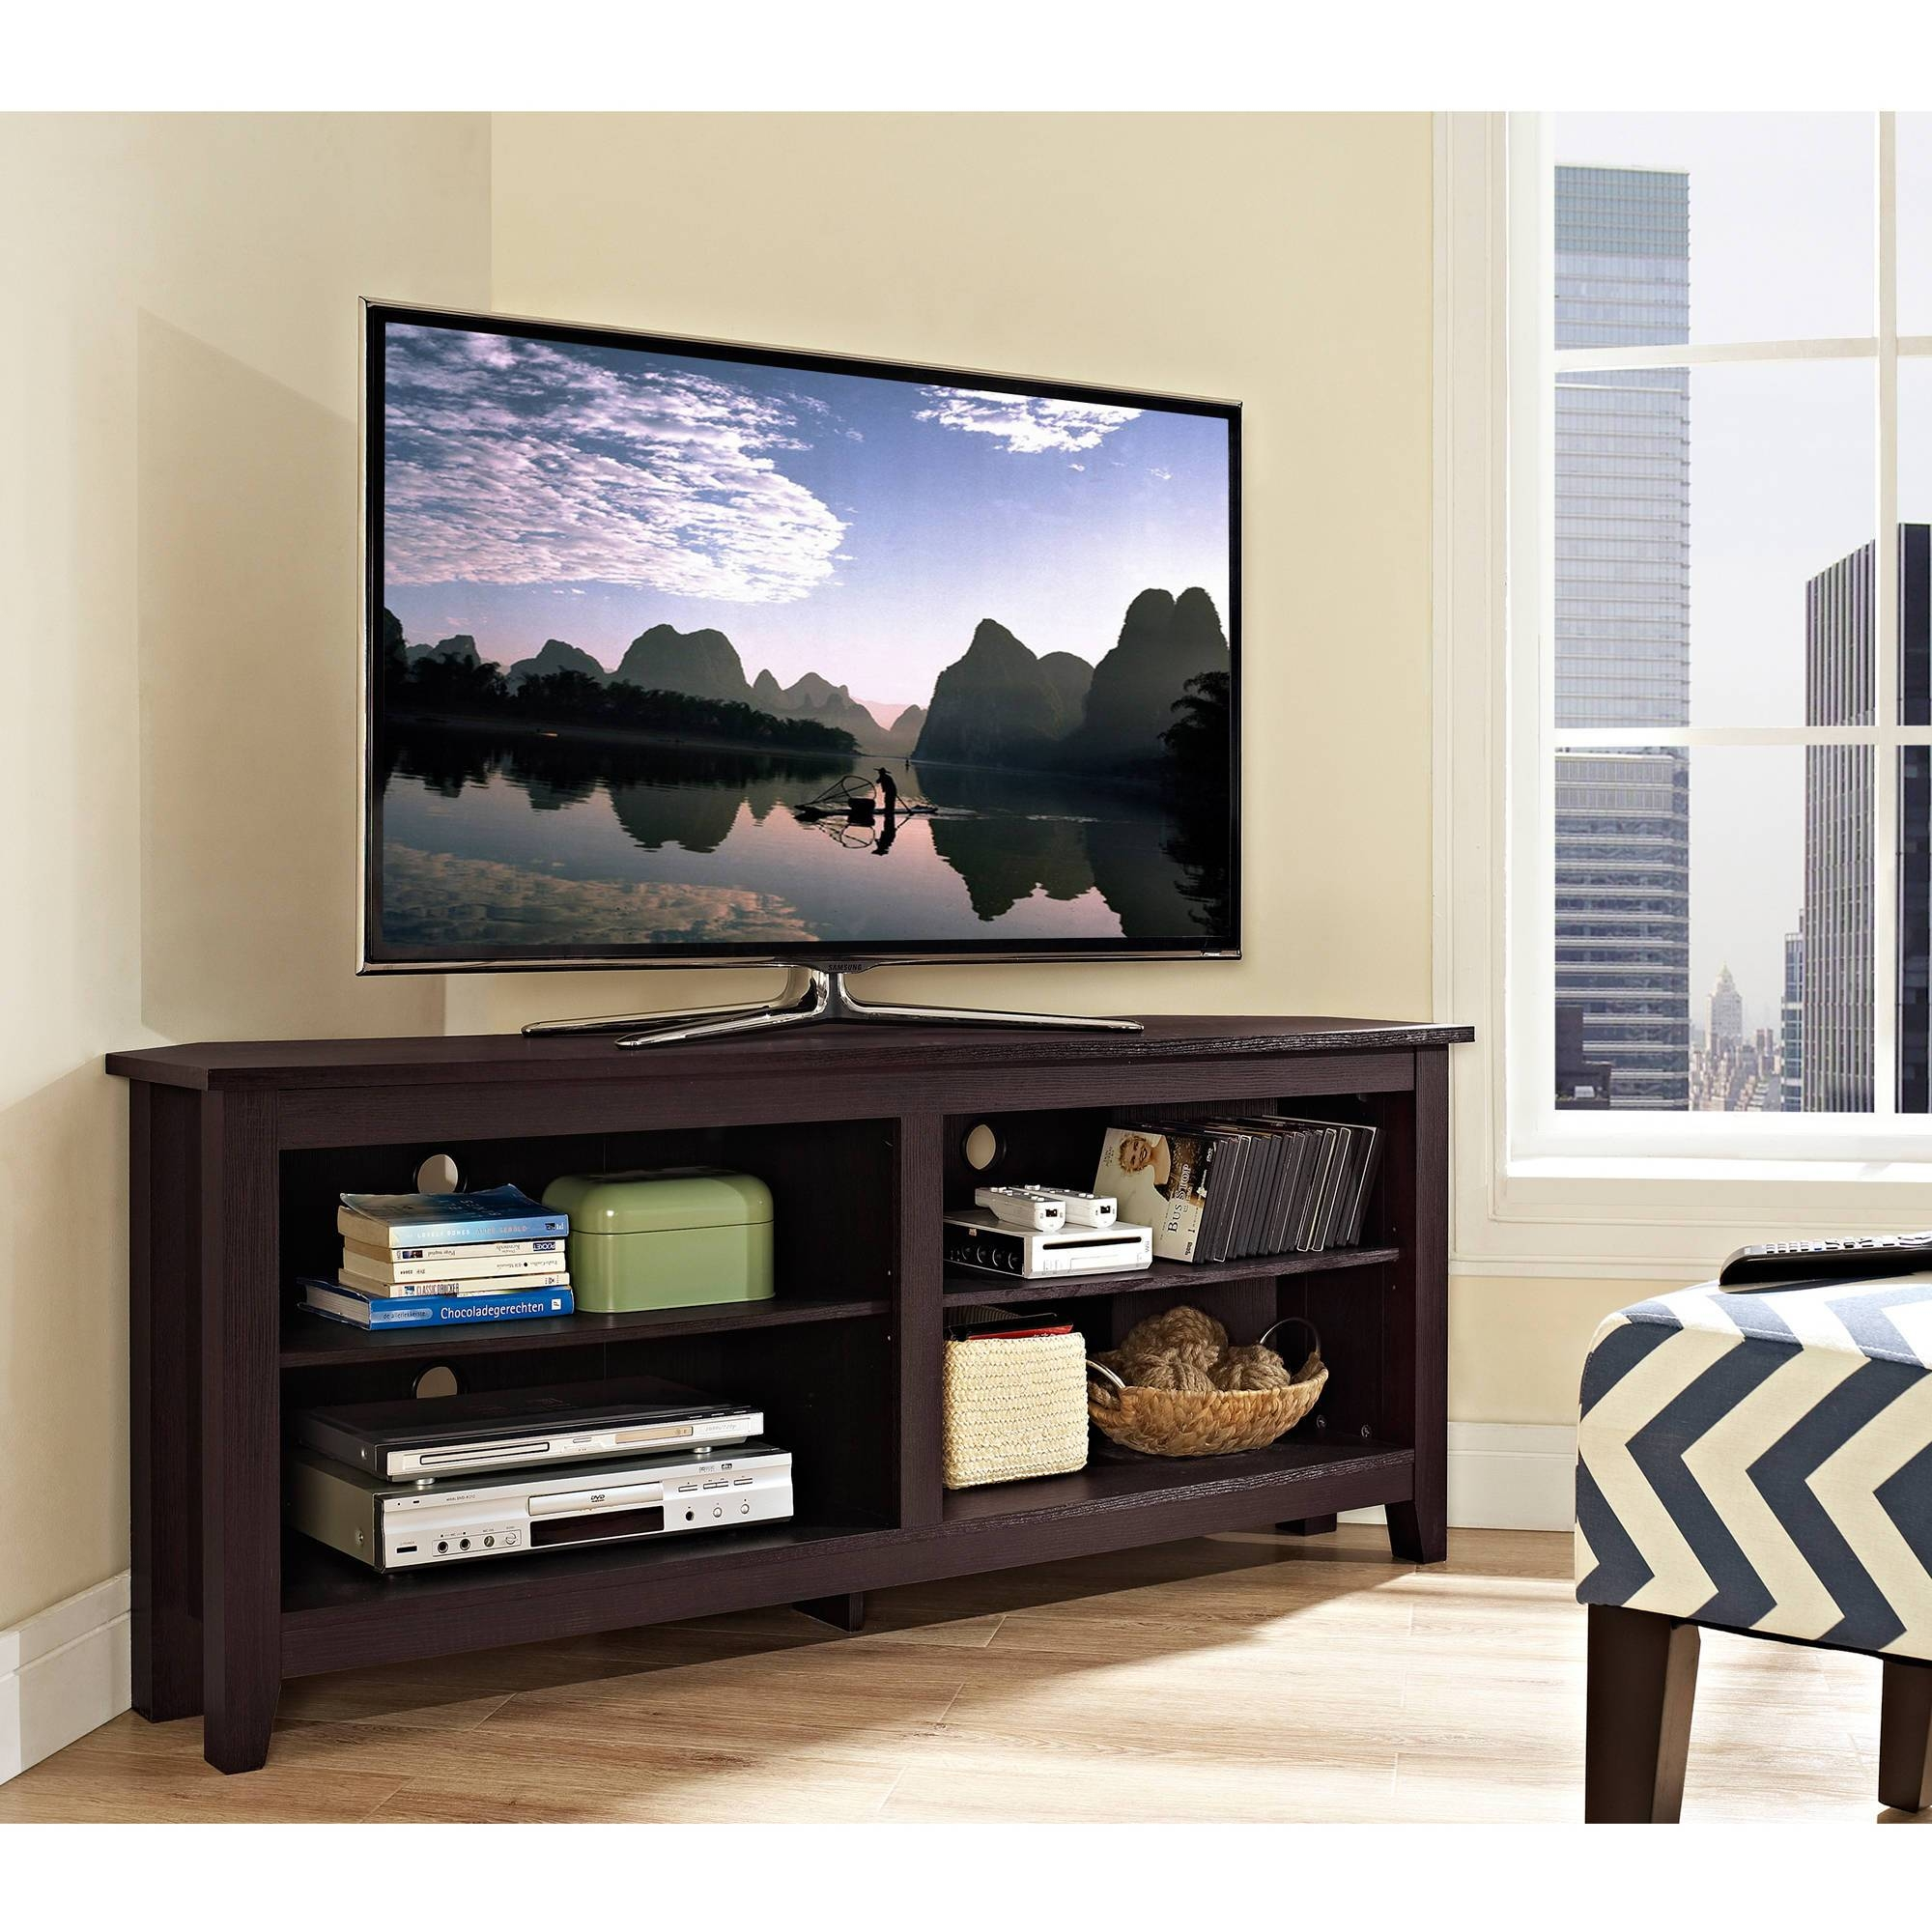 "Wood Corner Tv Console For Tvs Up To 60"", Multiple Colors pertaining to Corner Tv Stands For 60 Inch Tv (Image 15 of 15)"